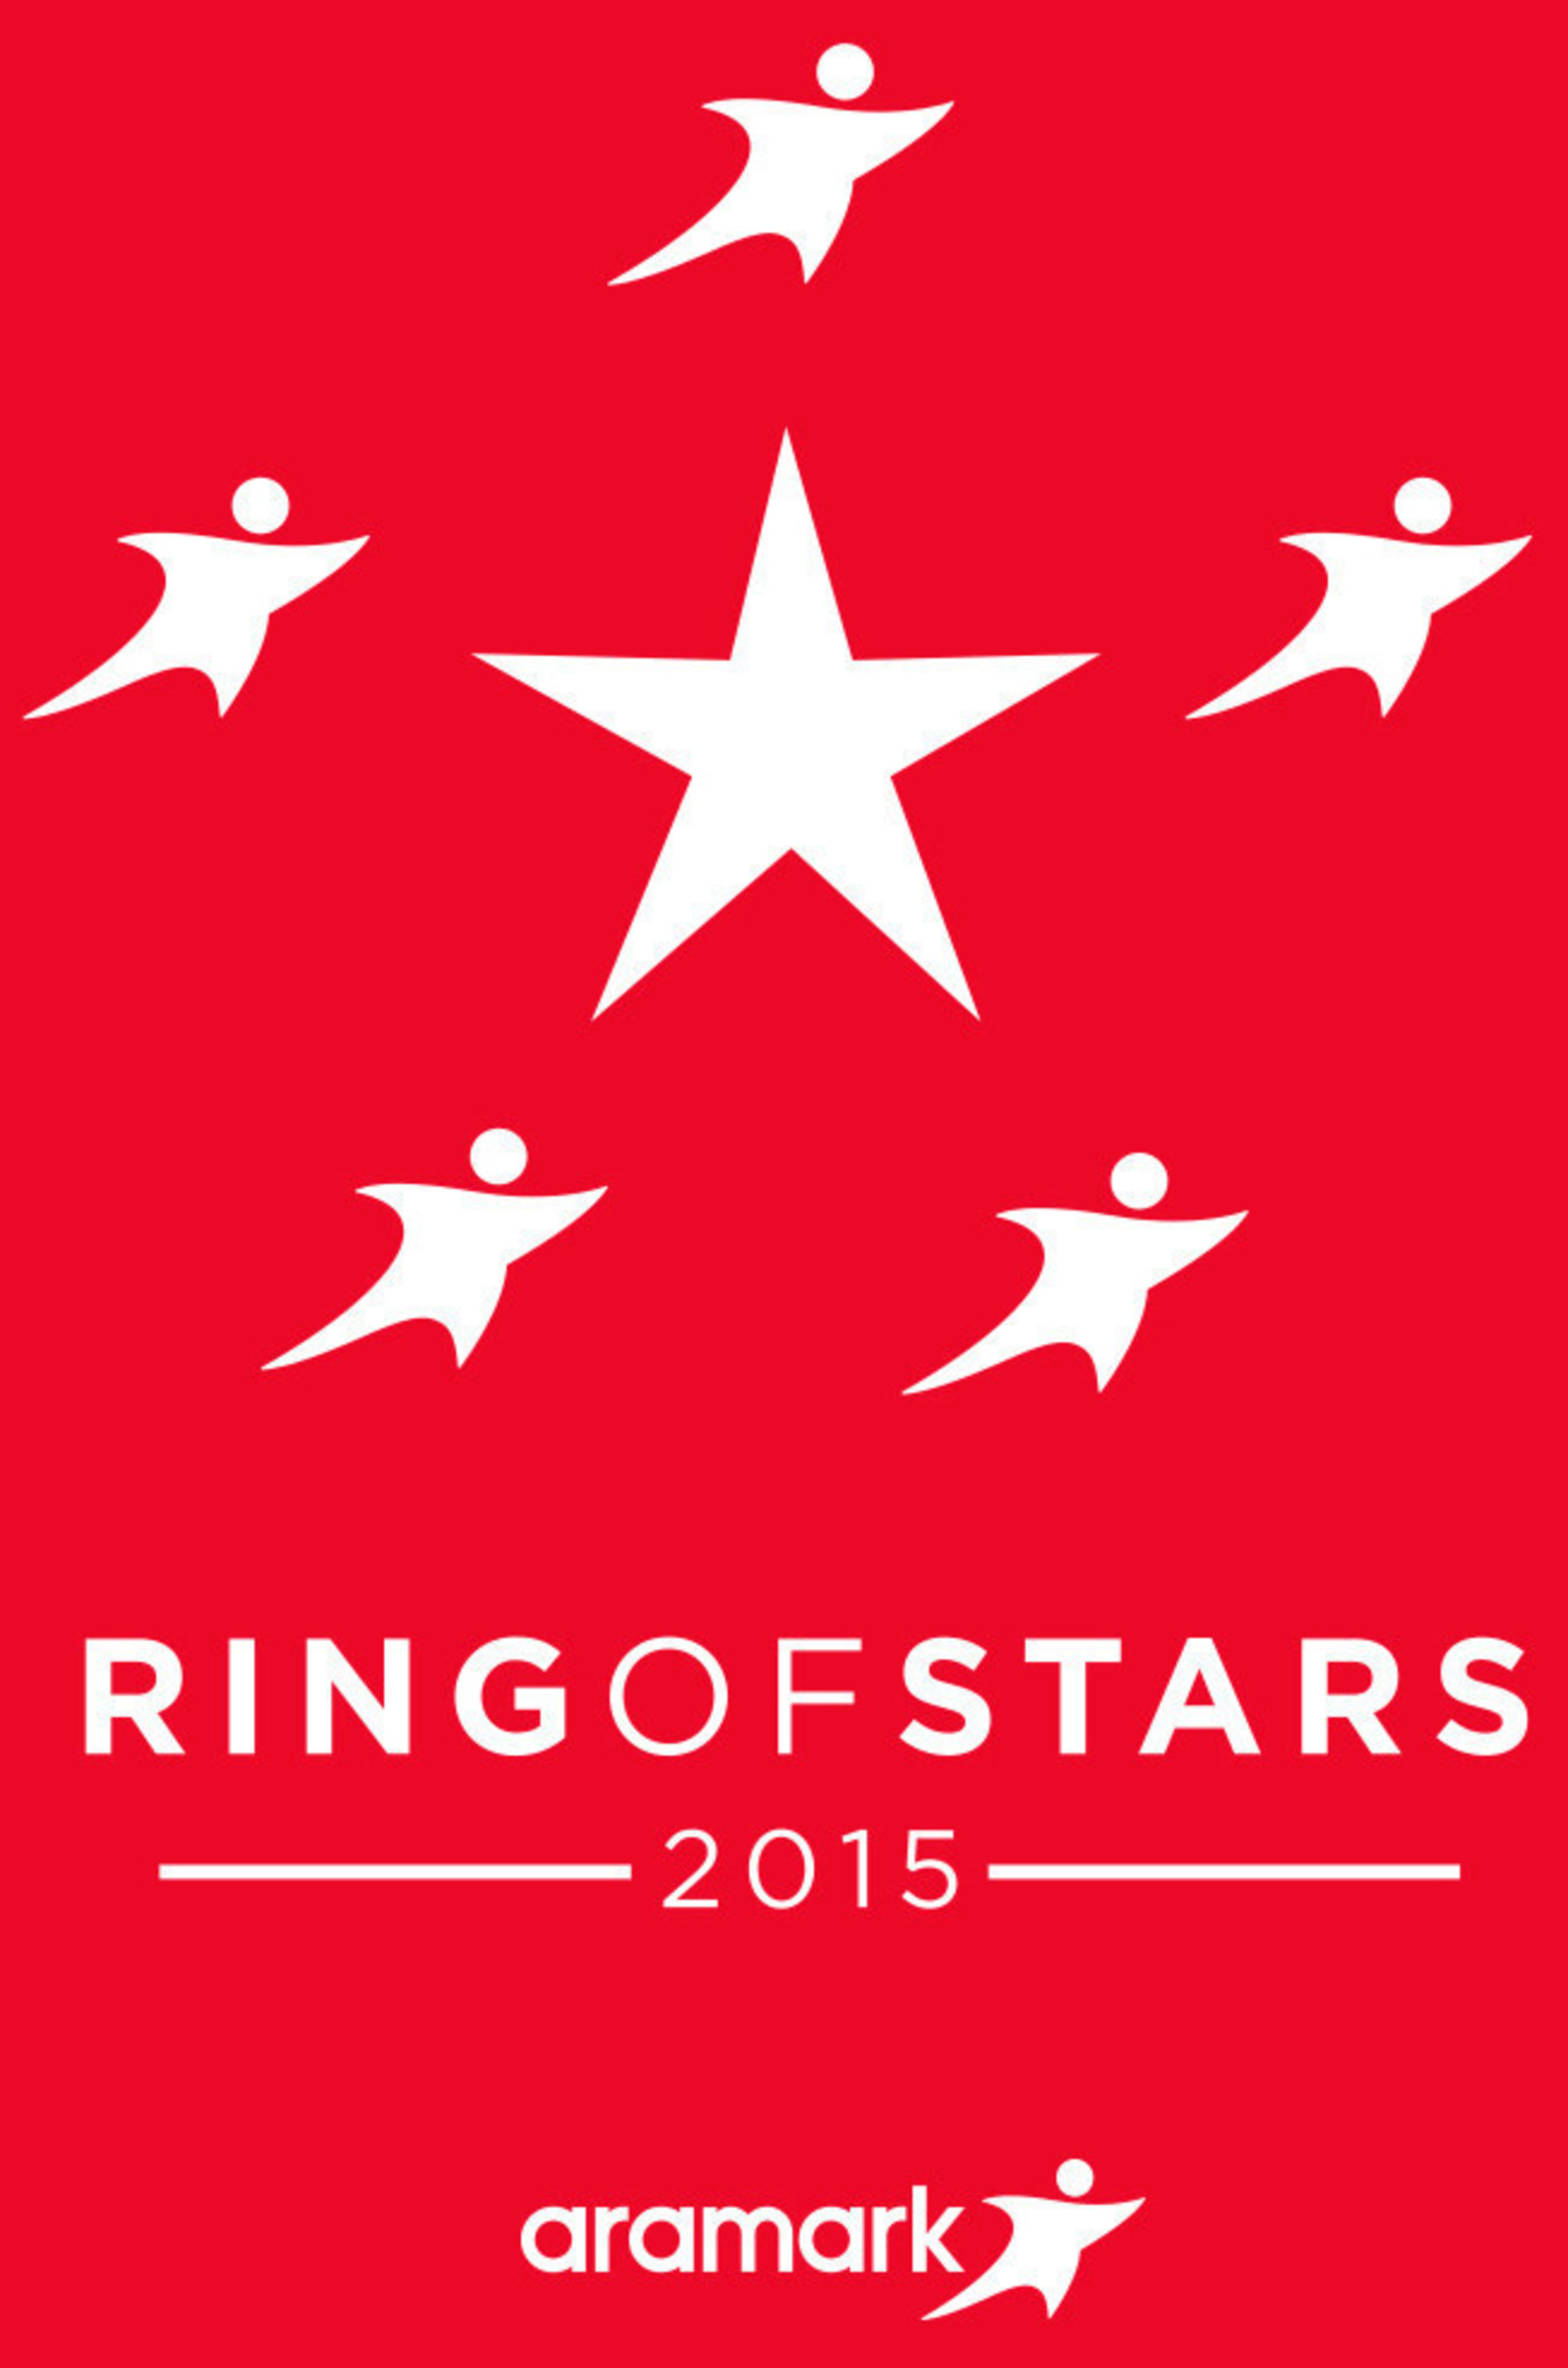 Aramark Launches New Ring of Stars Program to Recognize